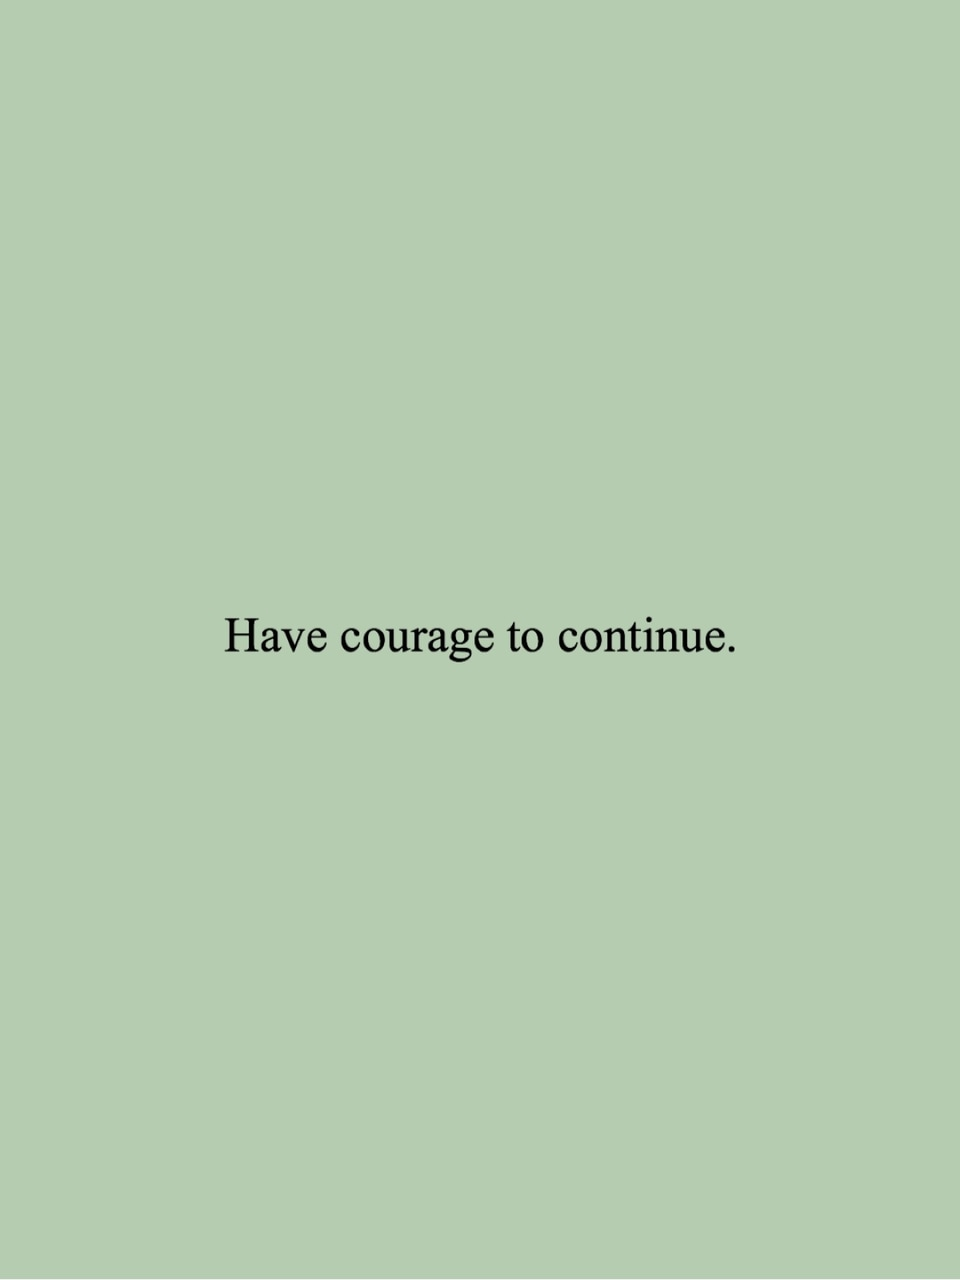 bravery, courage, and growth image